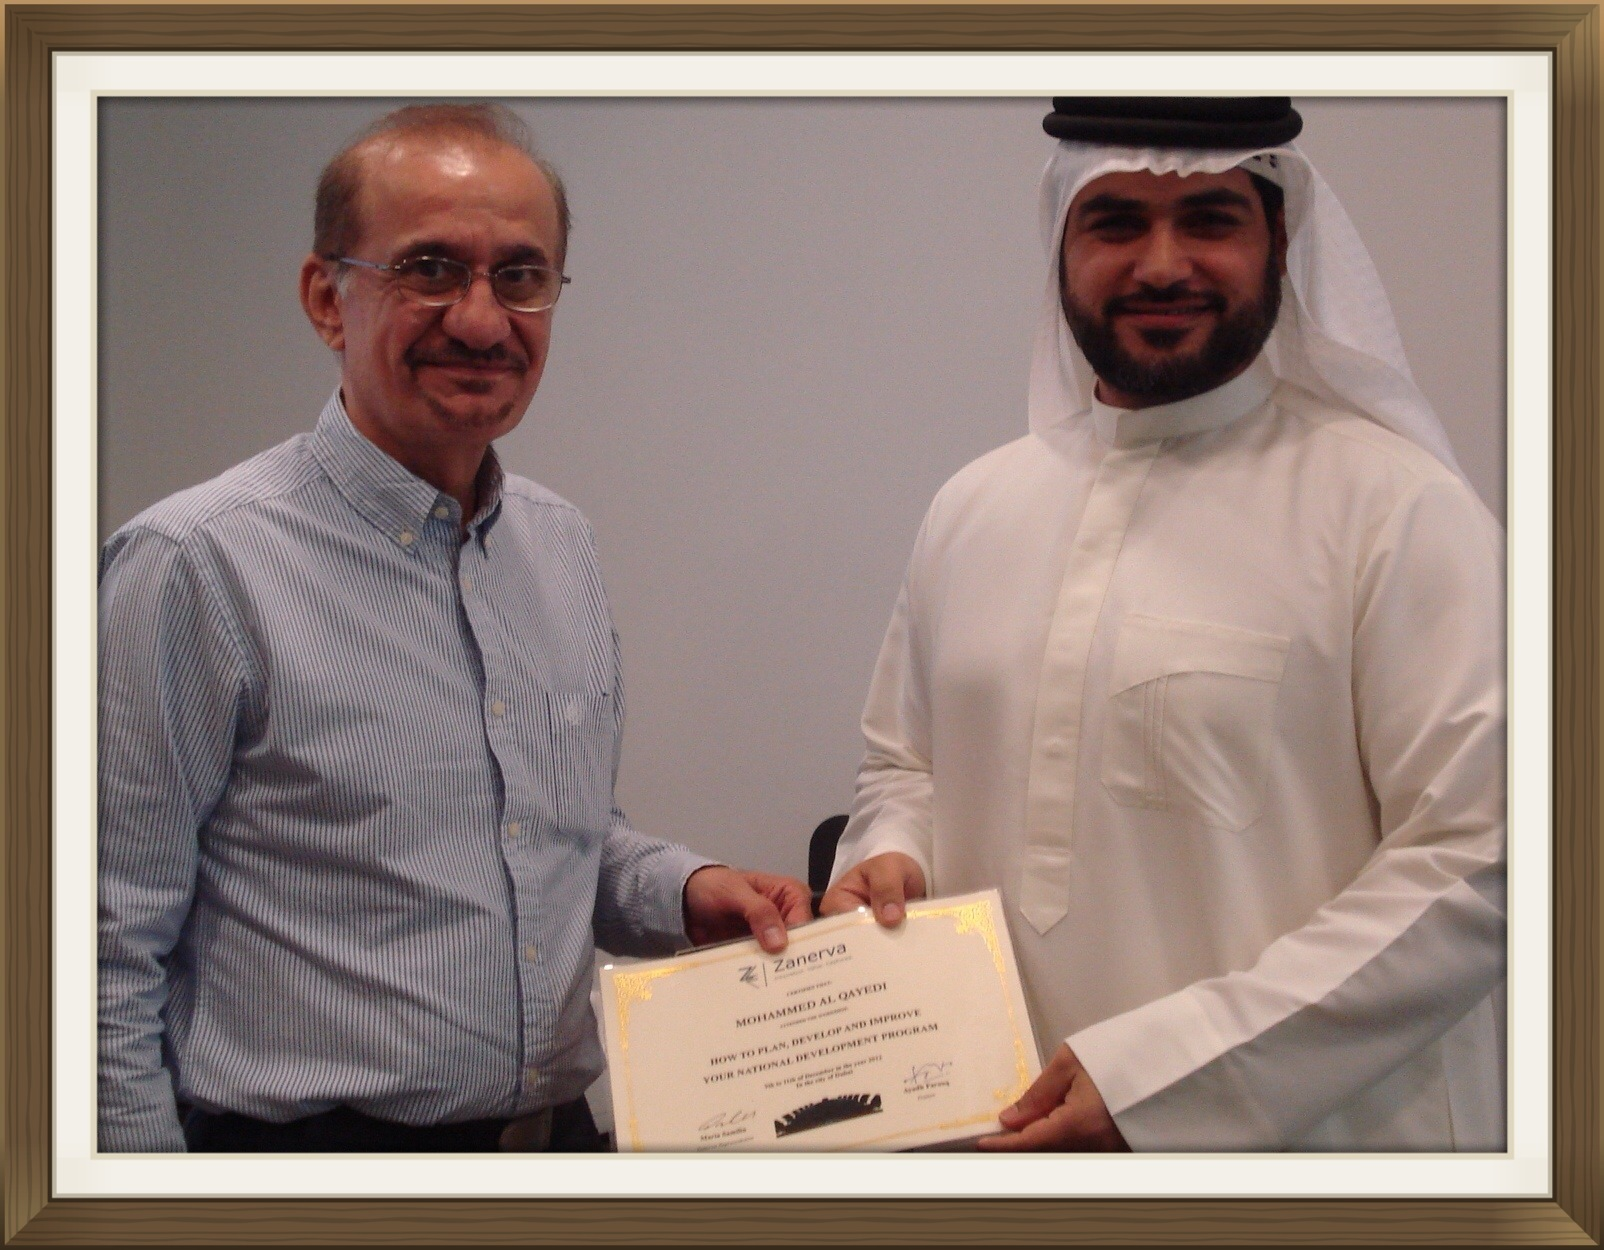 "Mohammed Al Qayedi - Human Resource Manager at National Petroleum Construction Company received his certificate of workshop participation from Ayadh Farooq during the ""How to Improve Your National Development Program Workshop"" held in Dubai"